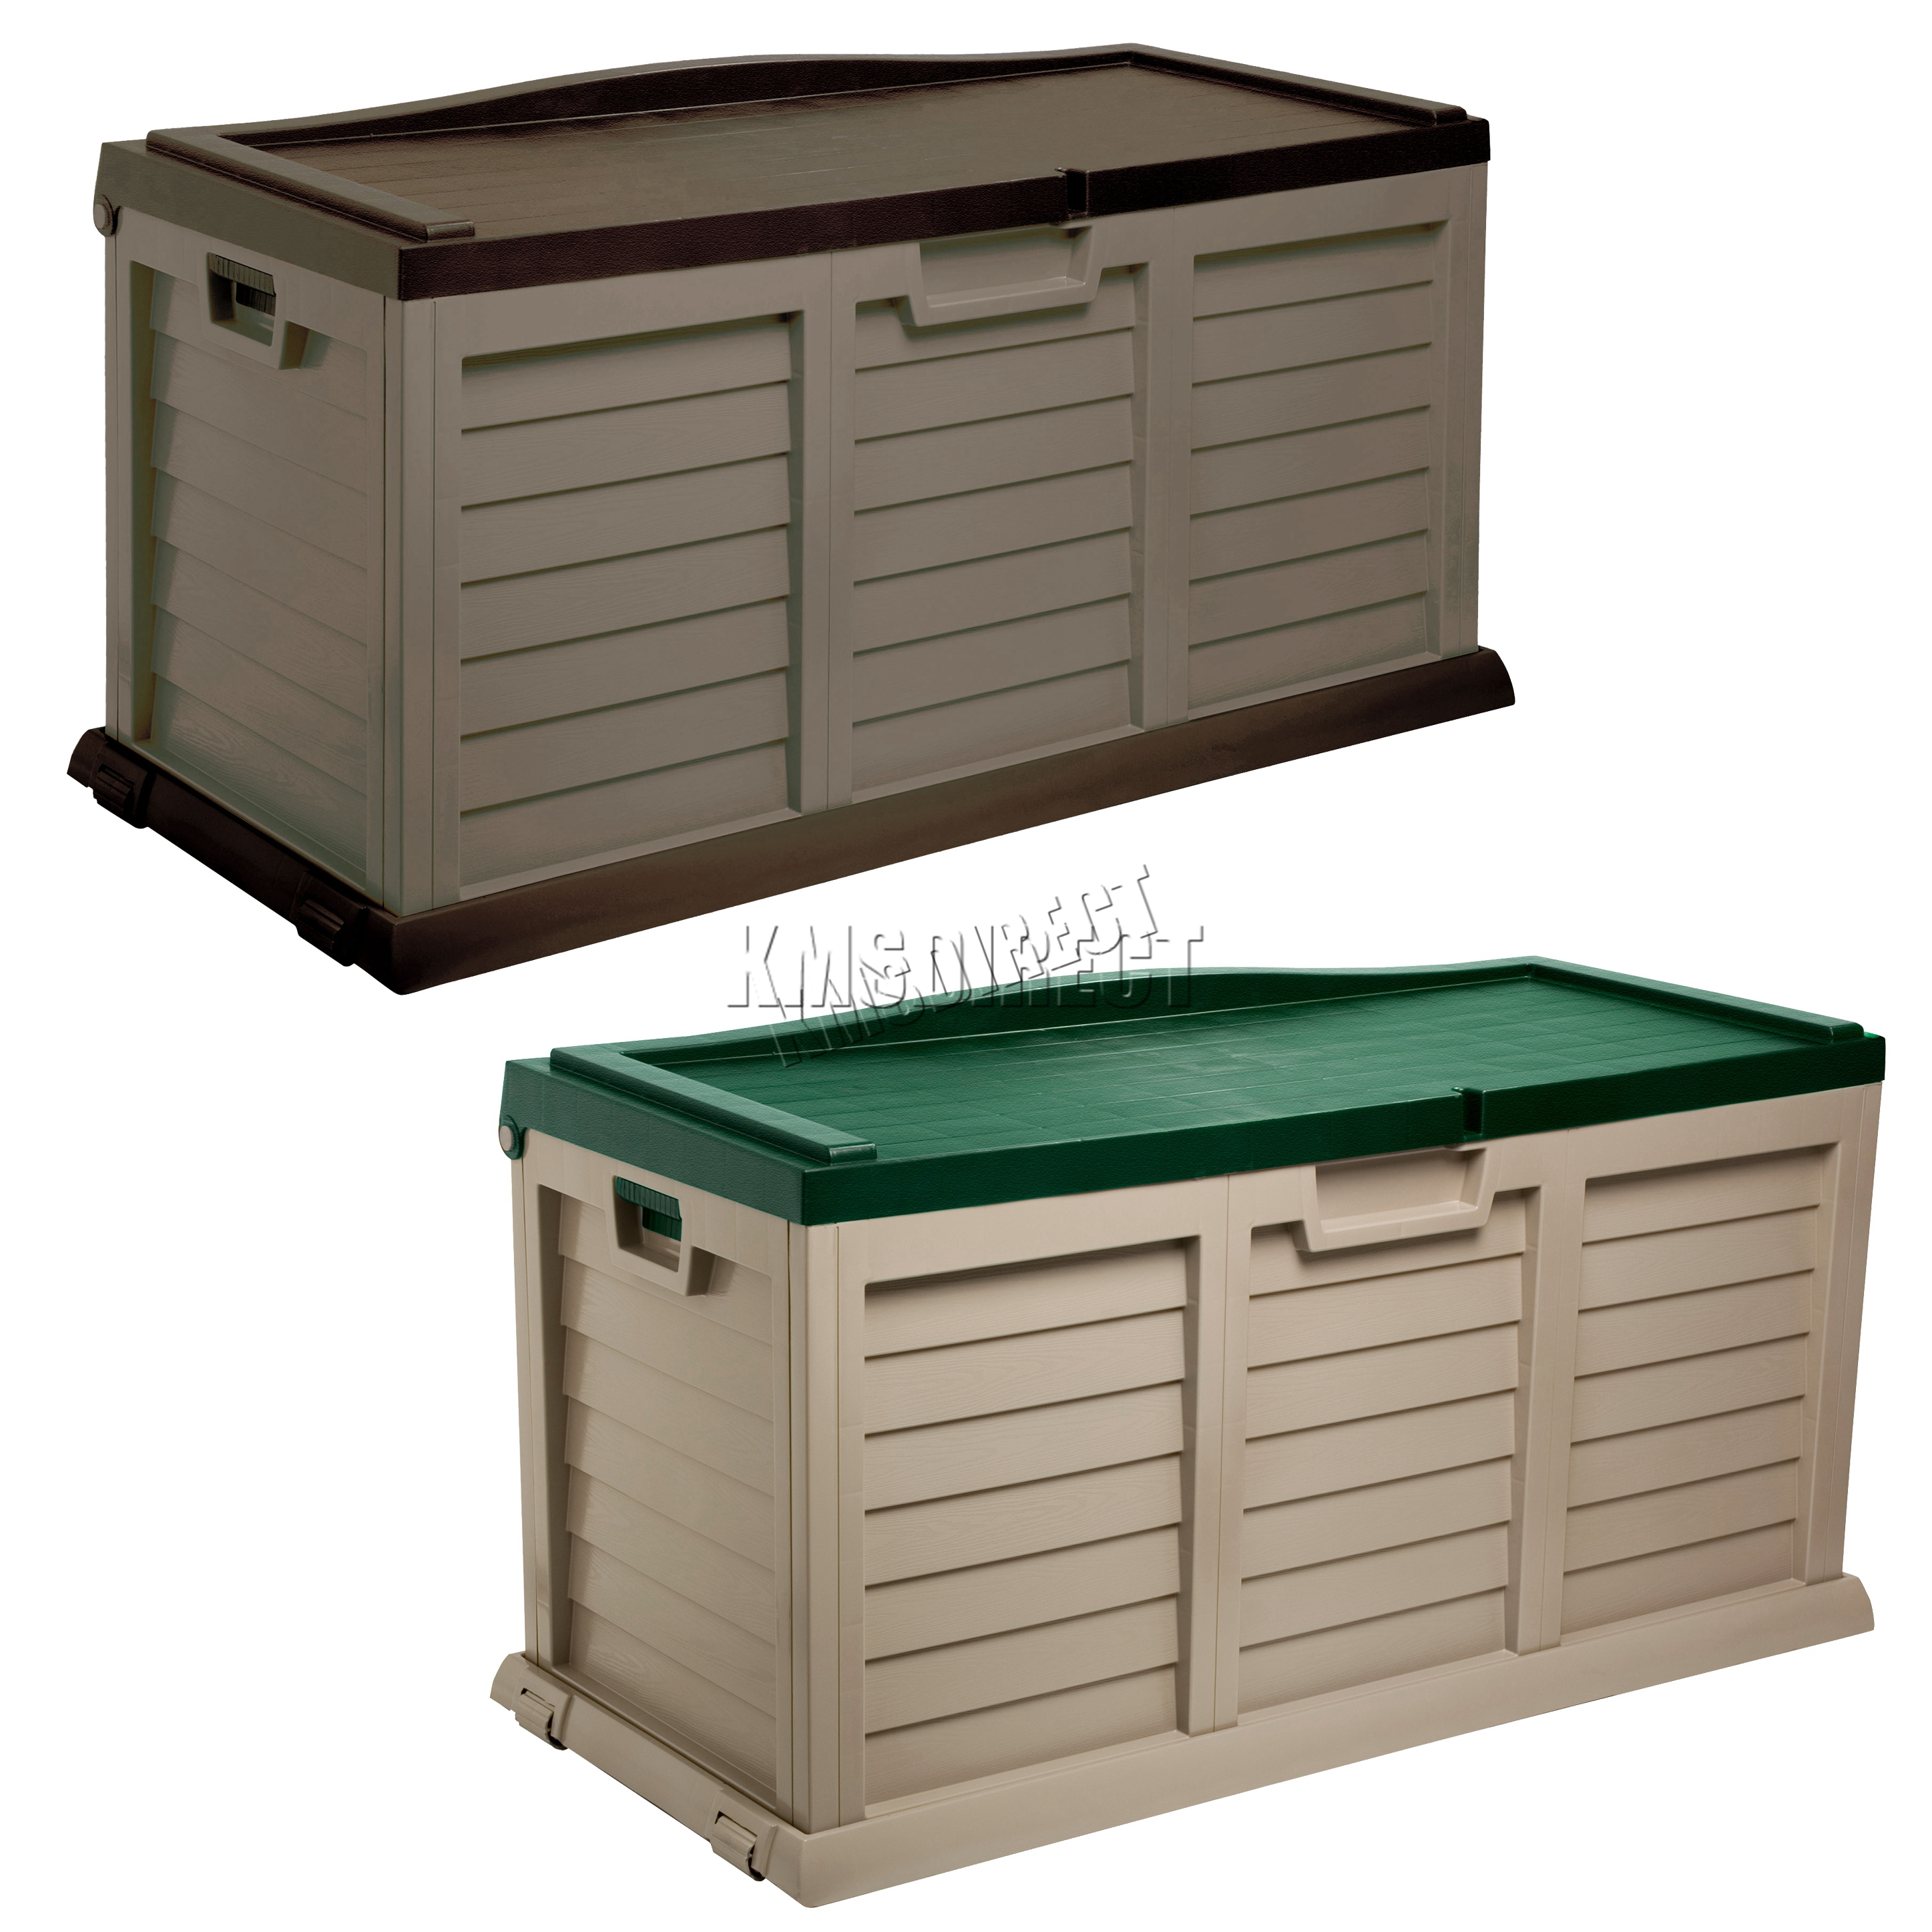 Starplast Outdoor Garden Storage Utility Chest Cushion Box Case 440l